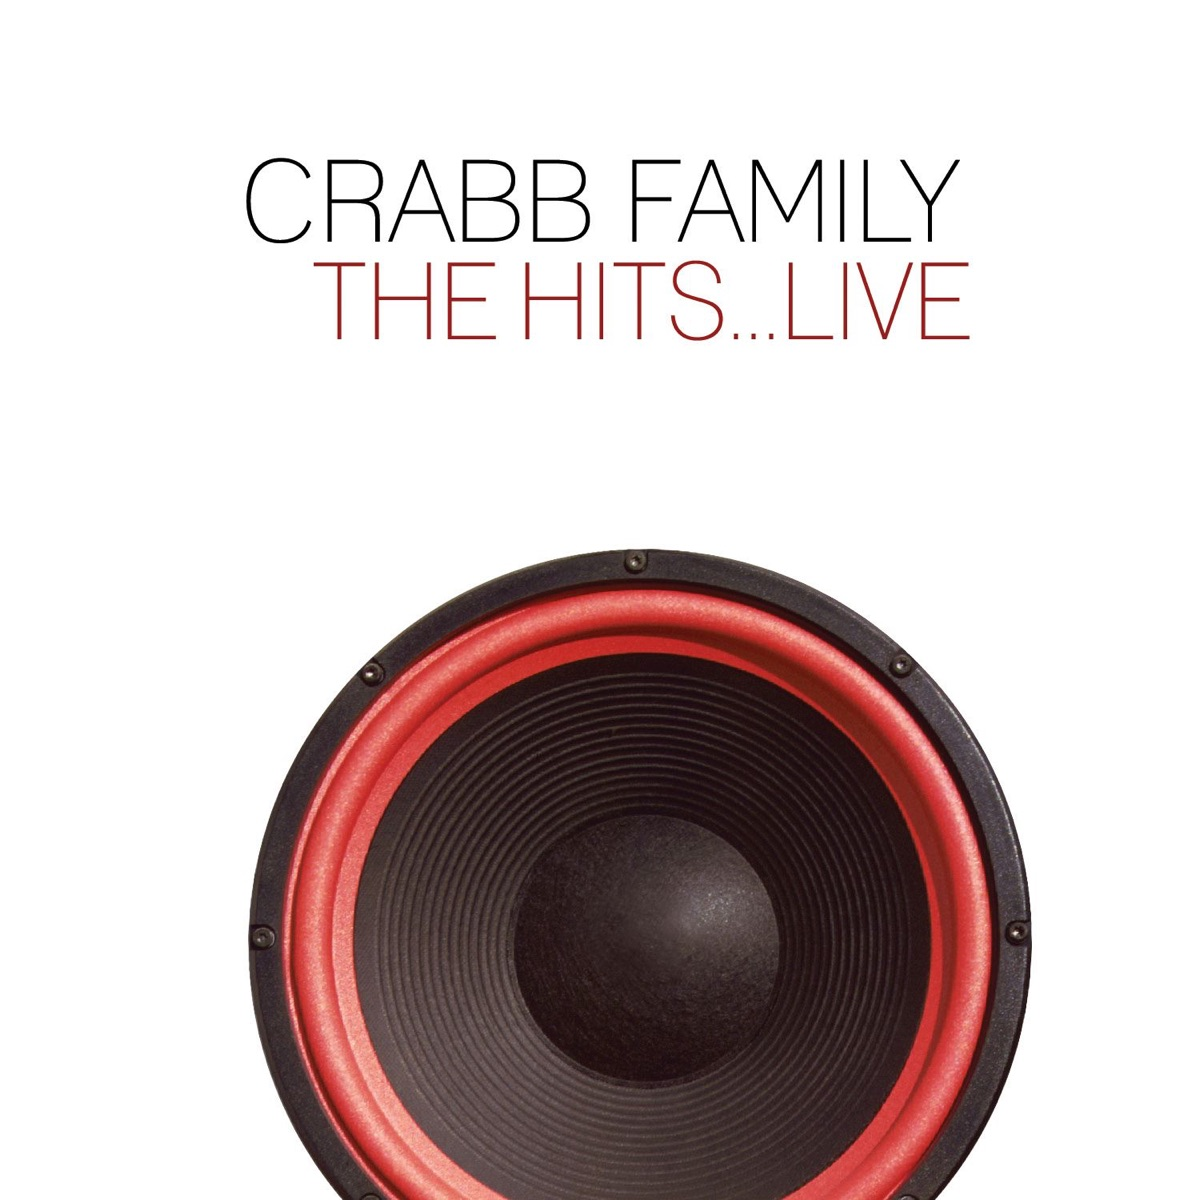 Art for I've Never Been This Homesick Before by The Crabb Family